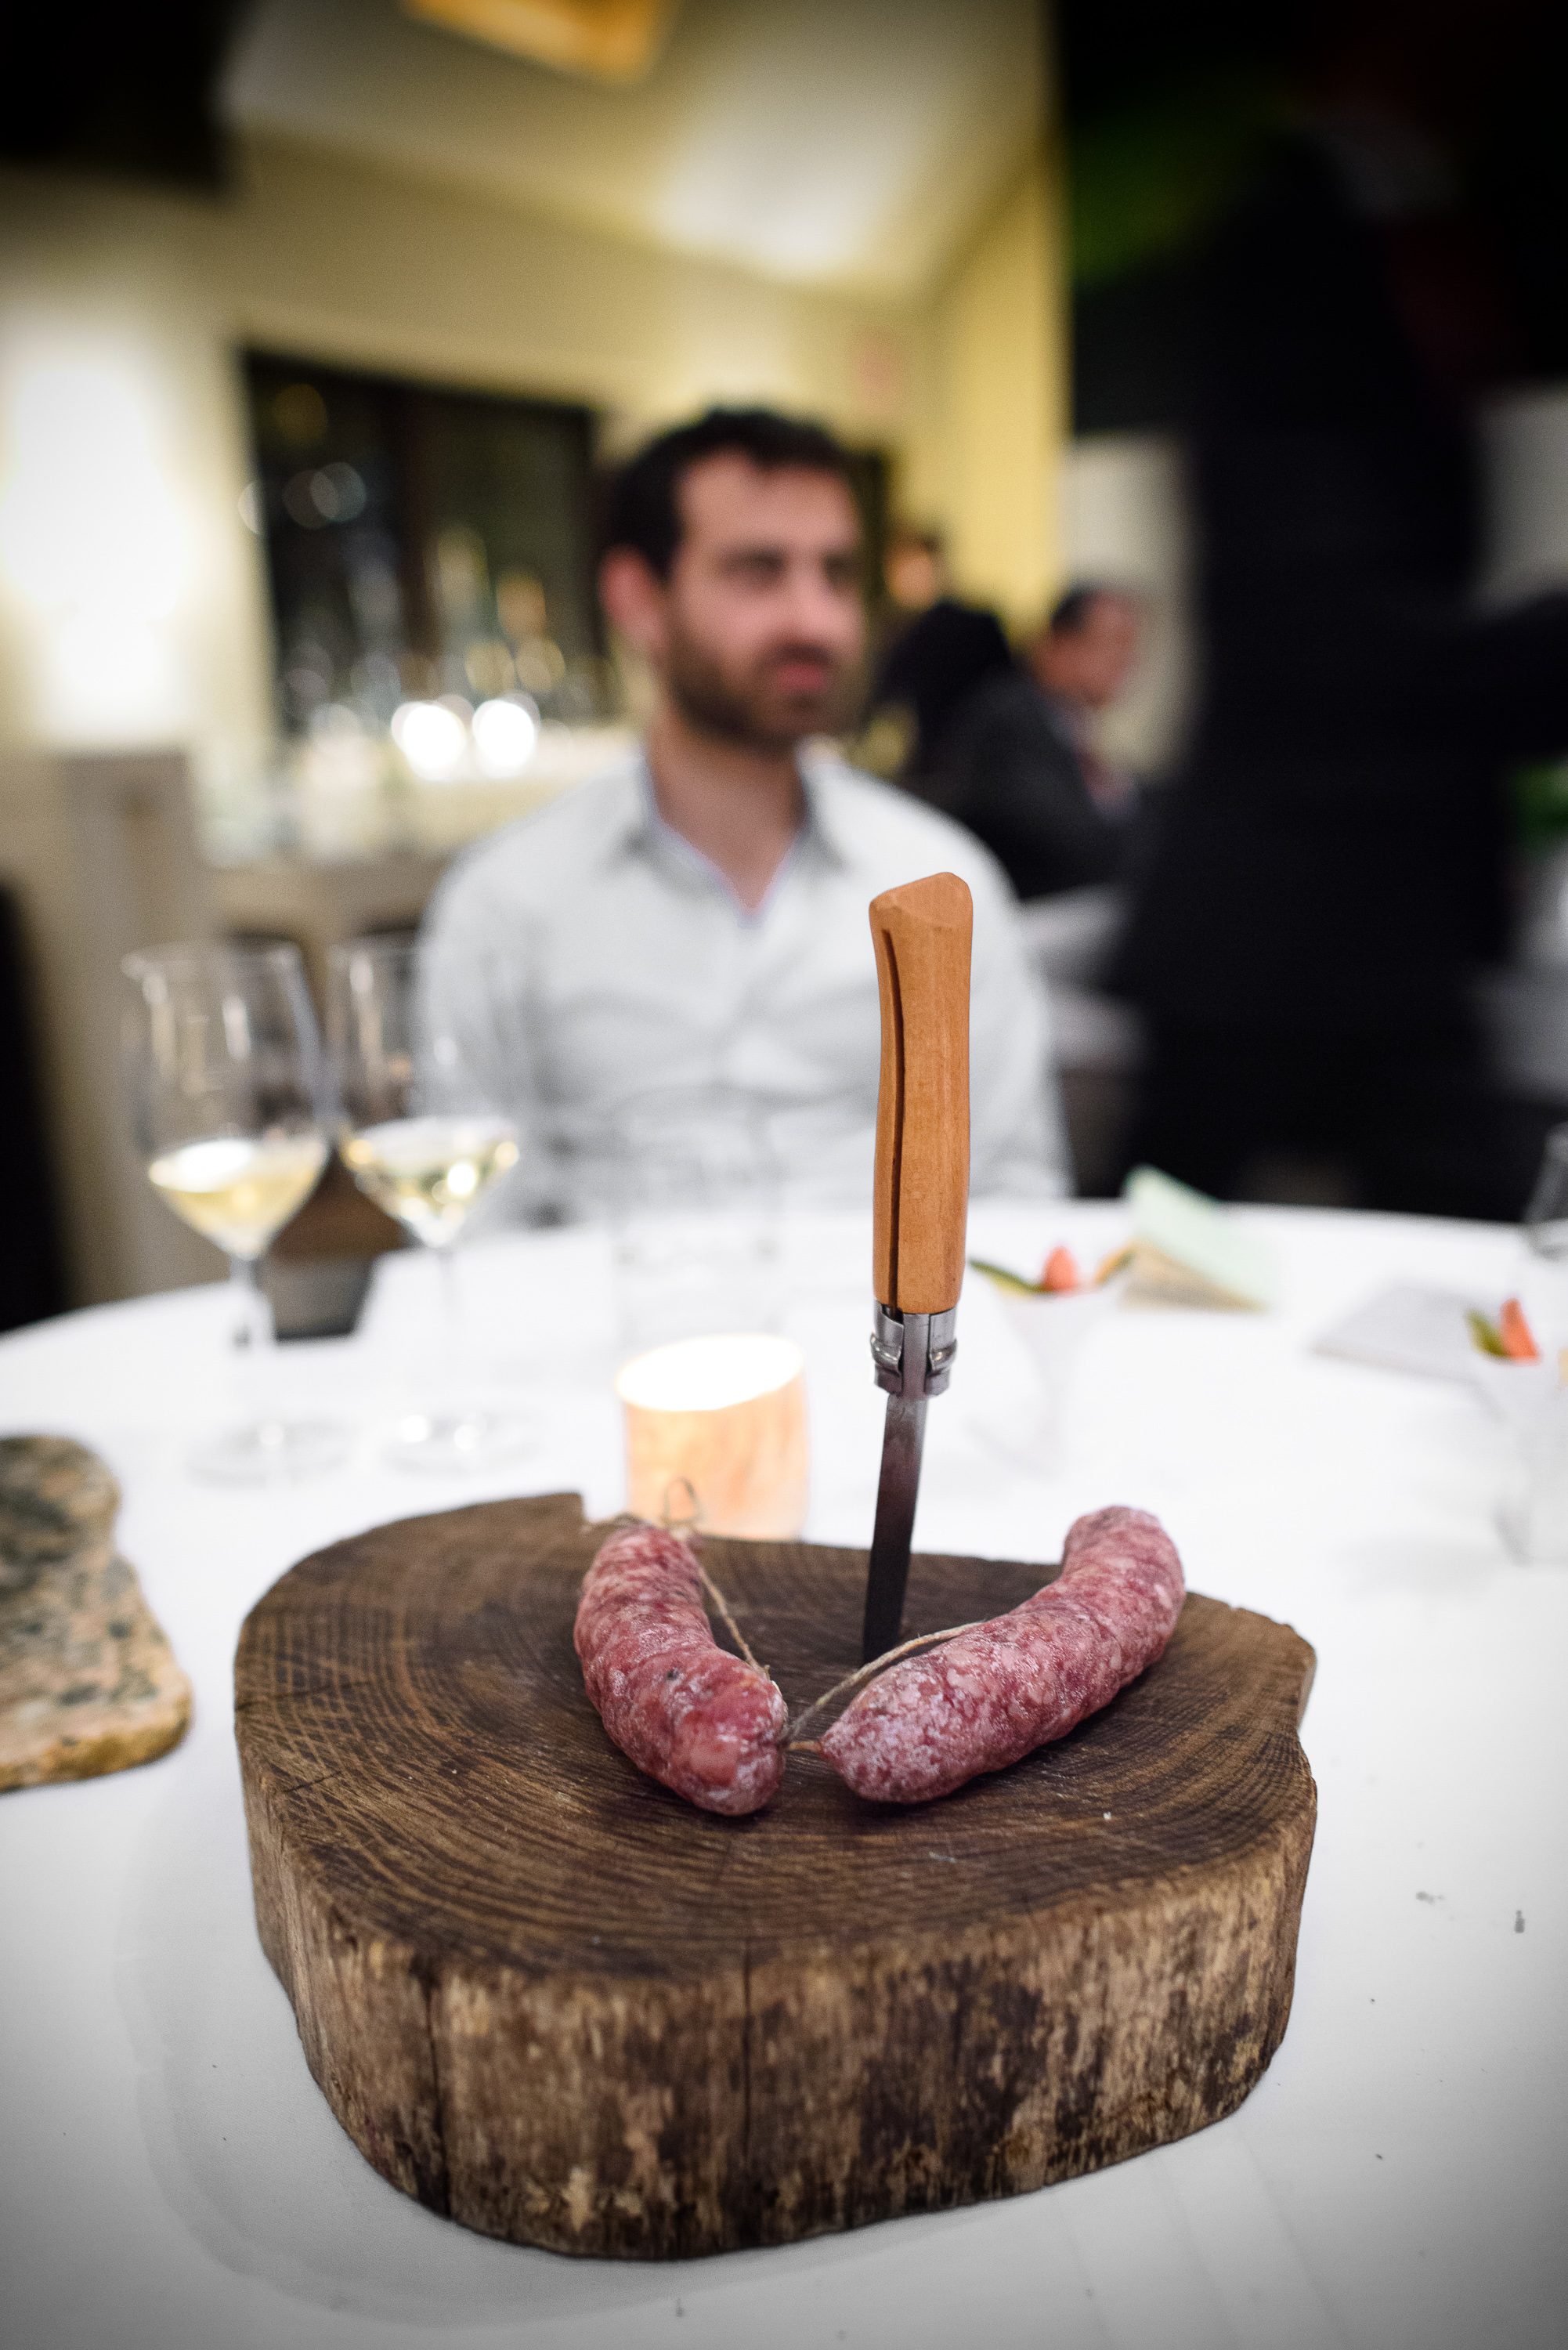 House-cured sausage